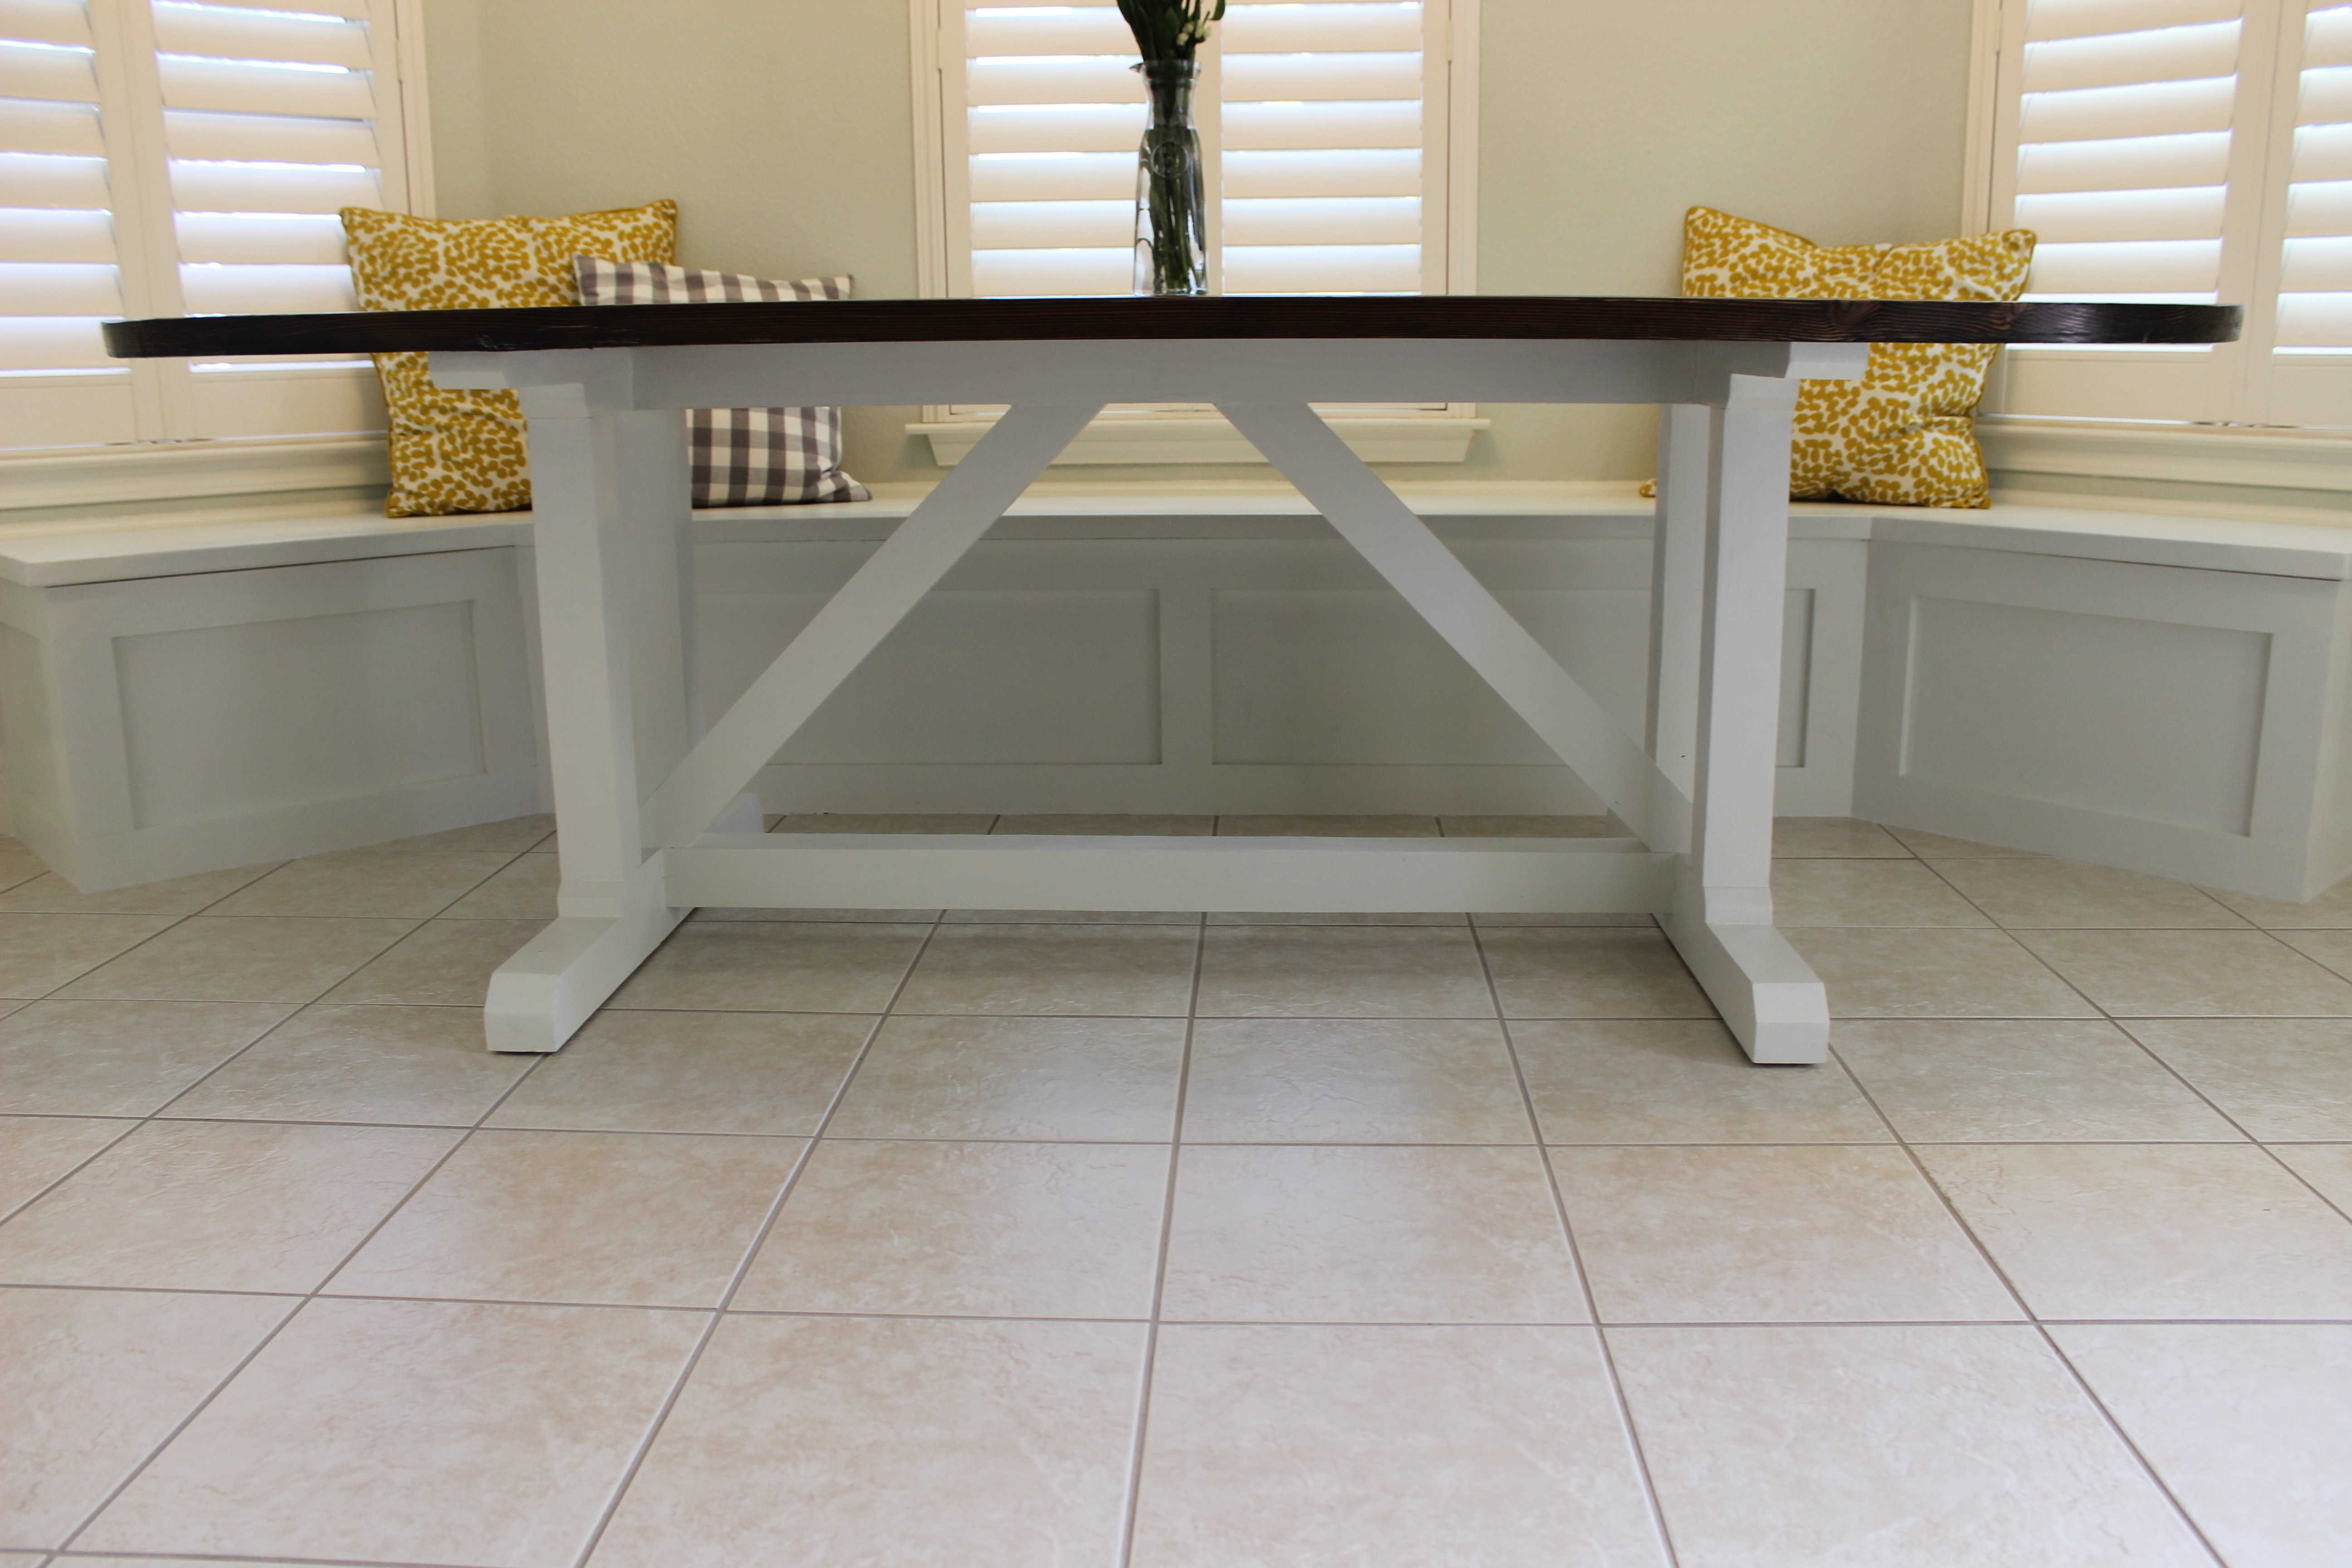 Finished table top in dining nook with banquette